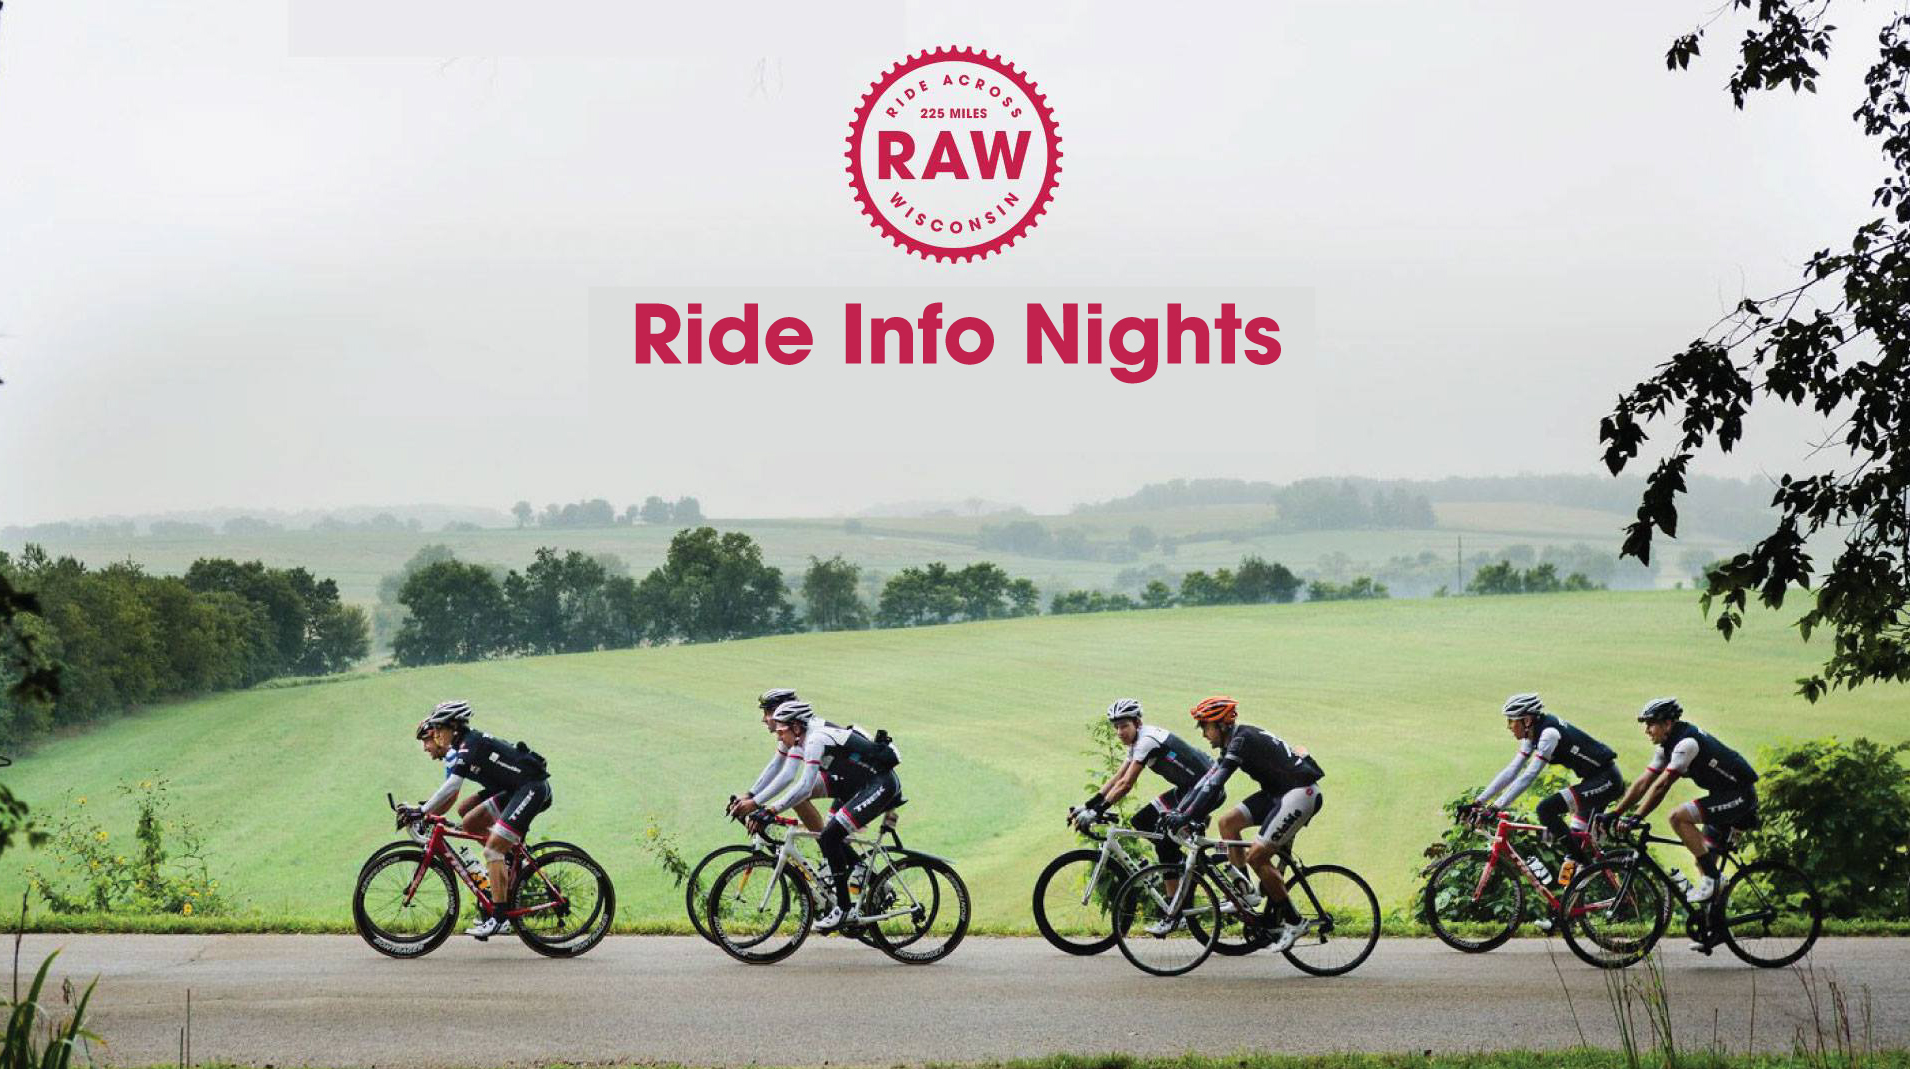 Ride-Info-Night-Facebook-Banner-Generic.jpg